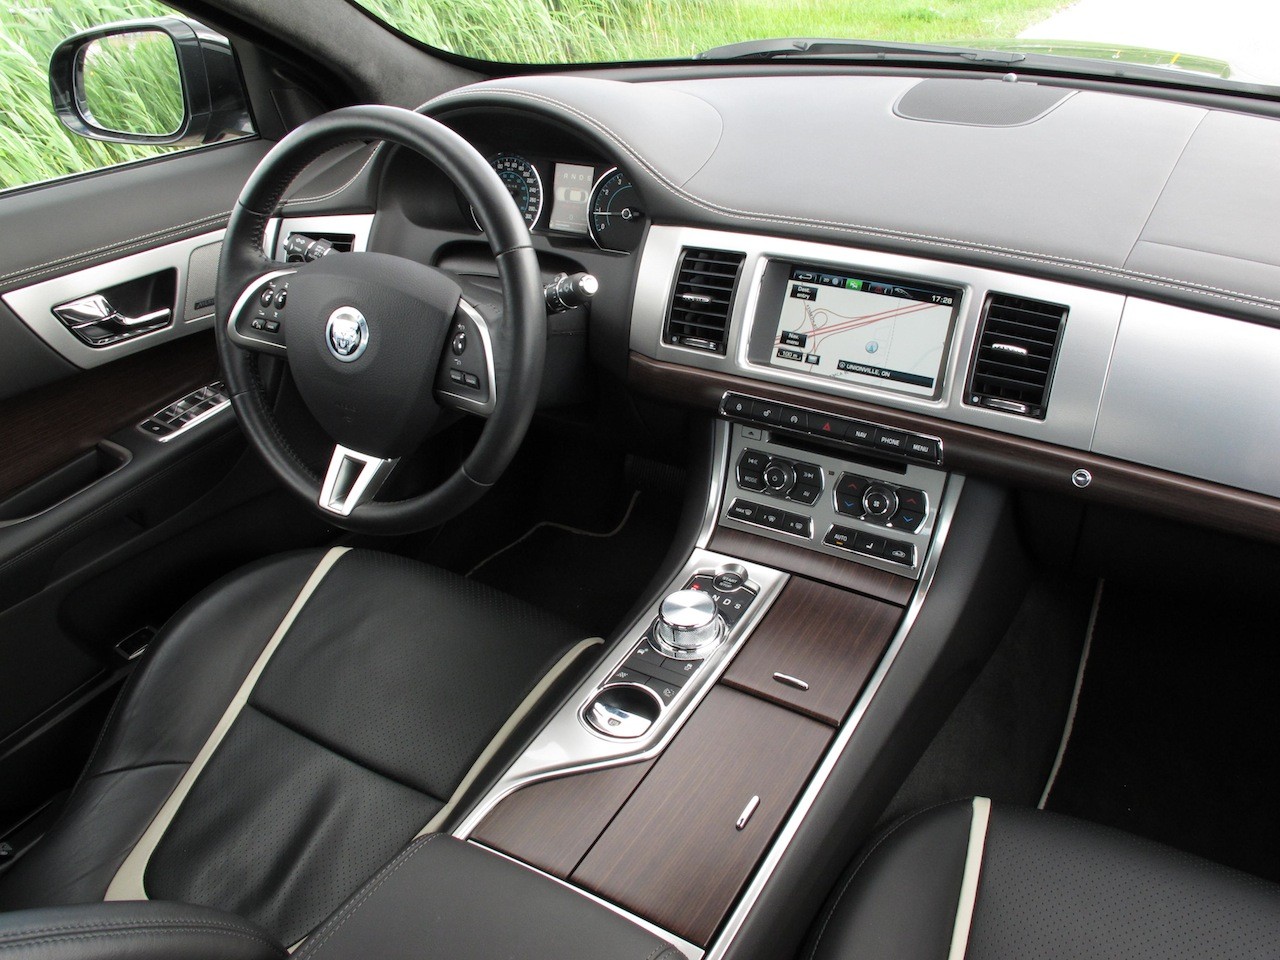 ... 2013 Jaguar XF 3.0L AWD Black Interior Dashboard ...